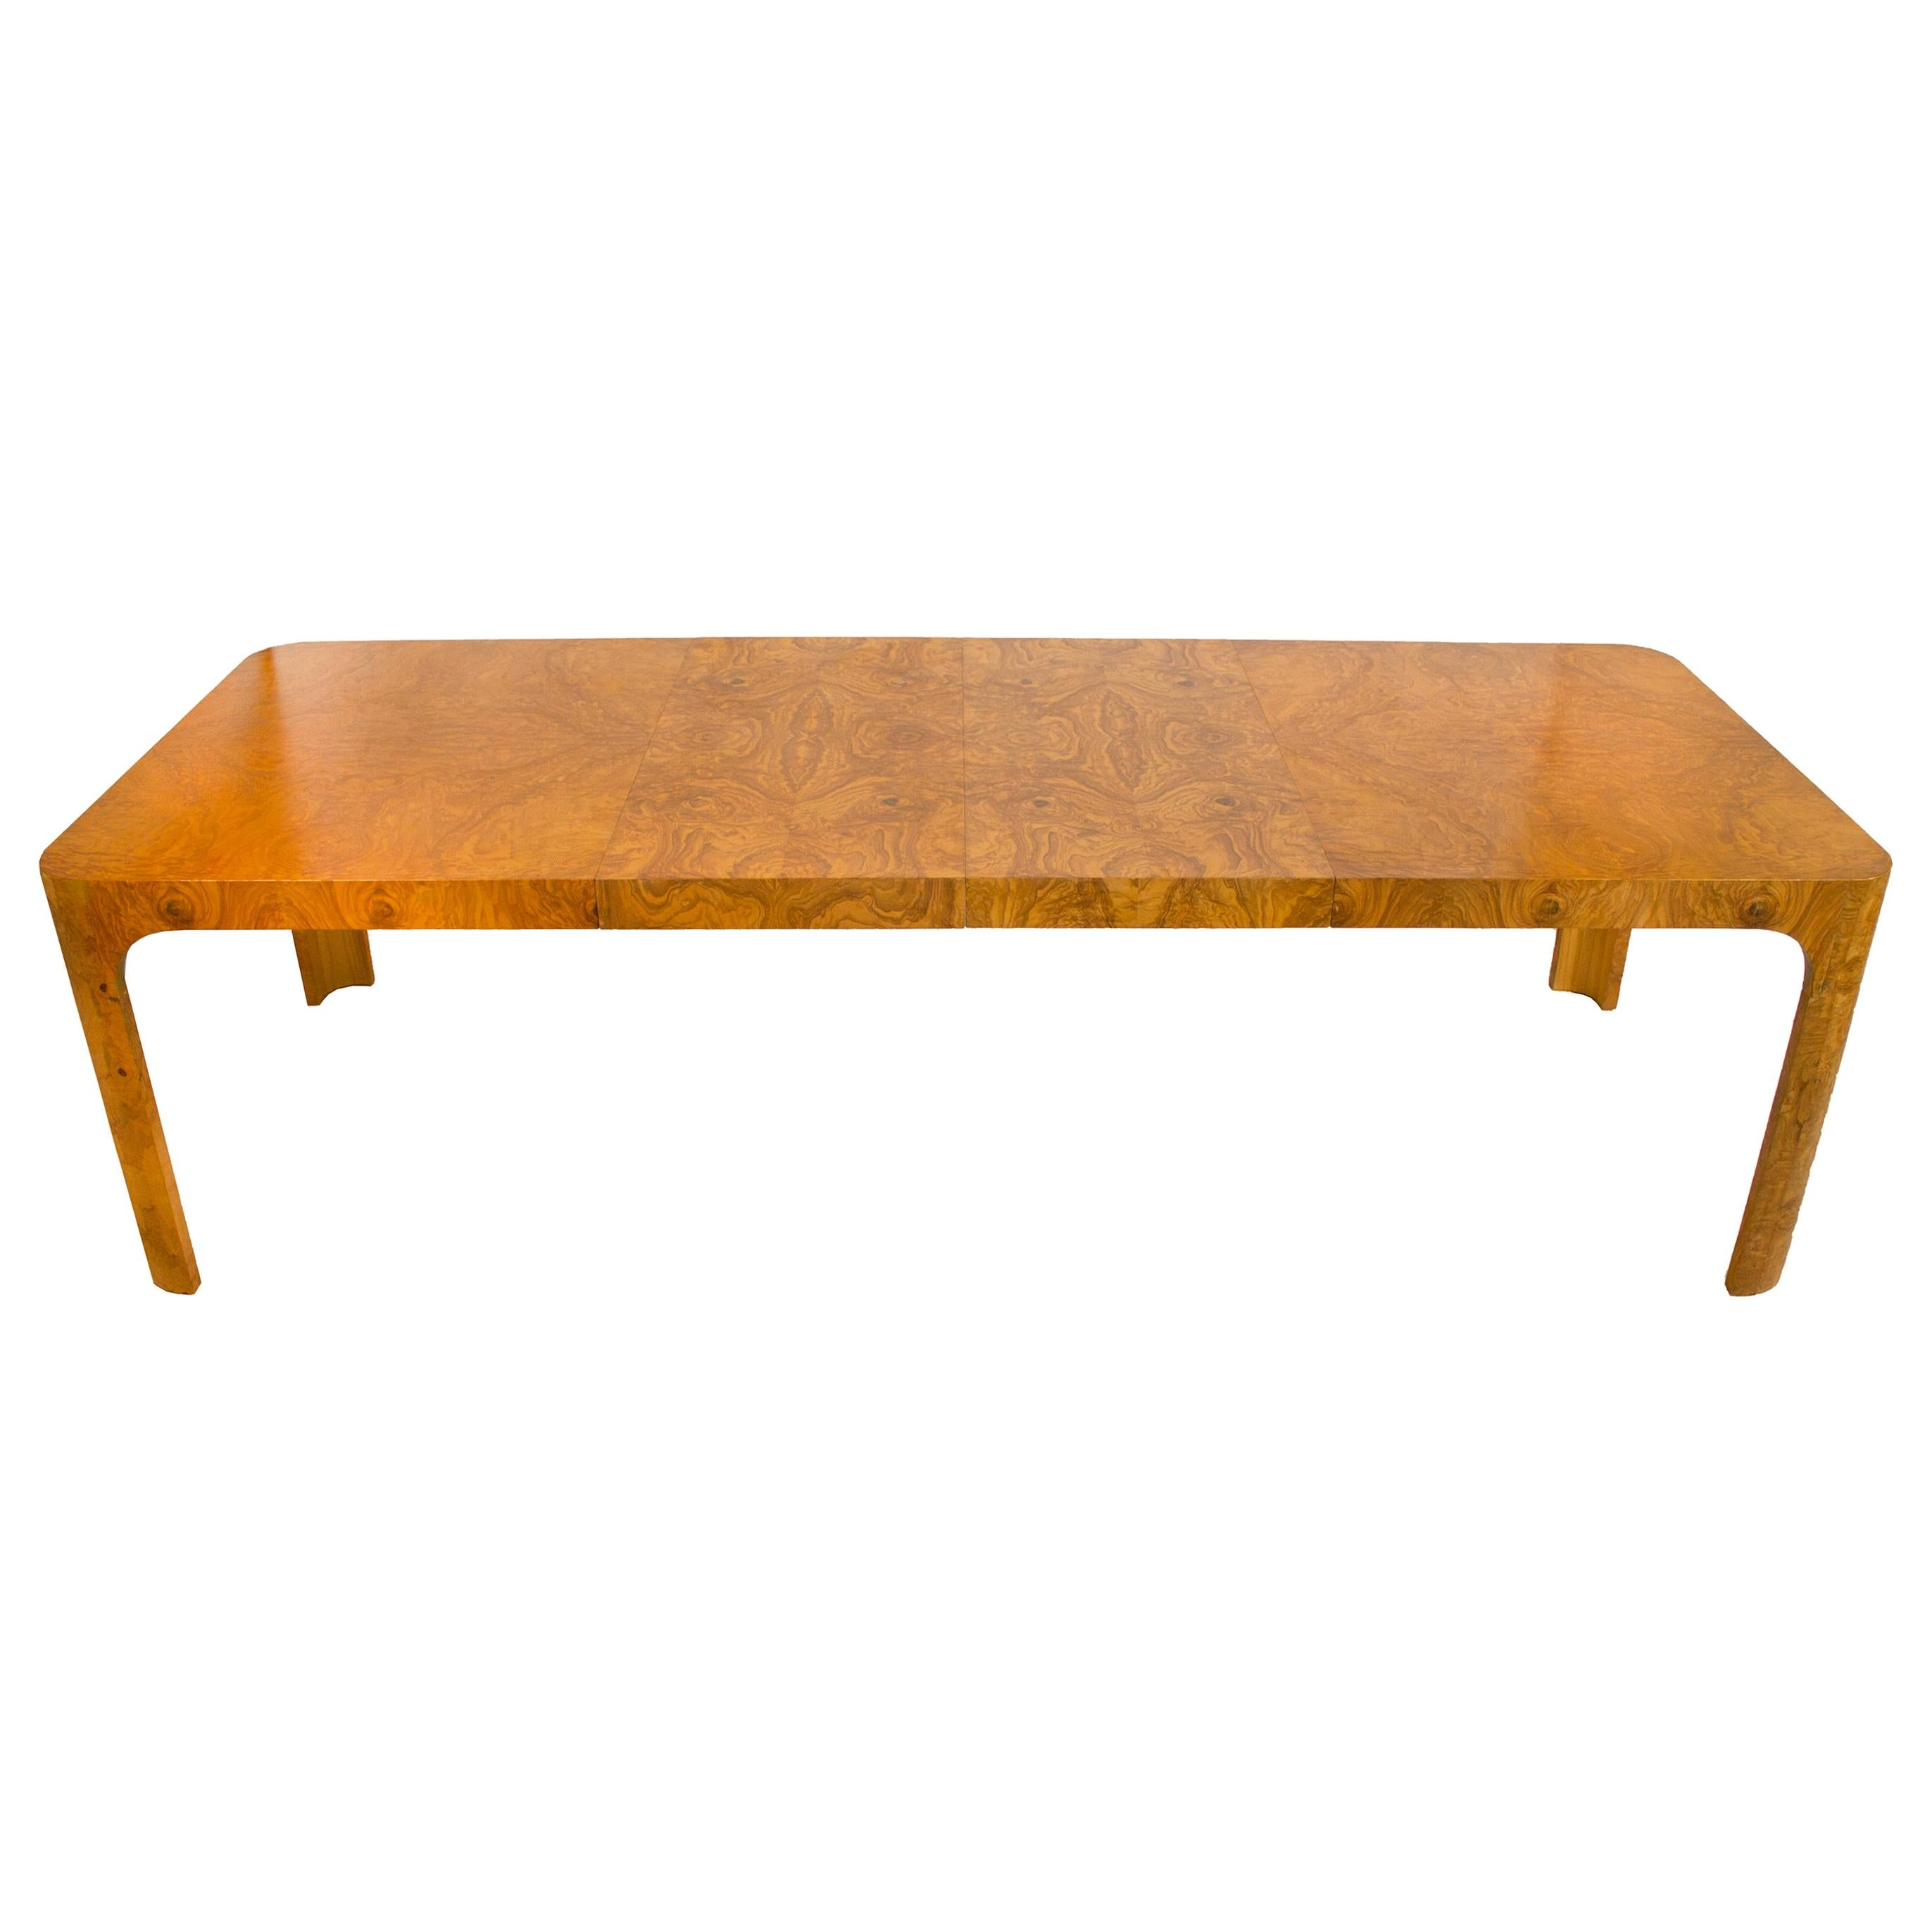 Milo Baughman Dining Table for Thayer Coggin in Olive Burl Wood, 1960s